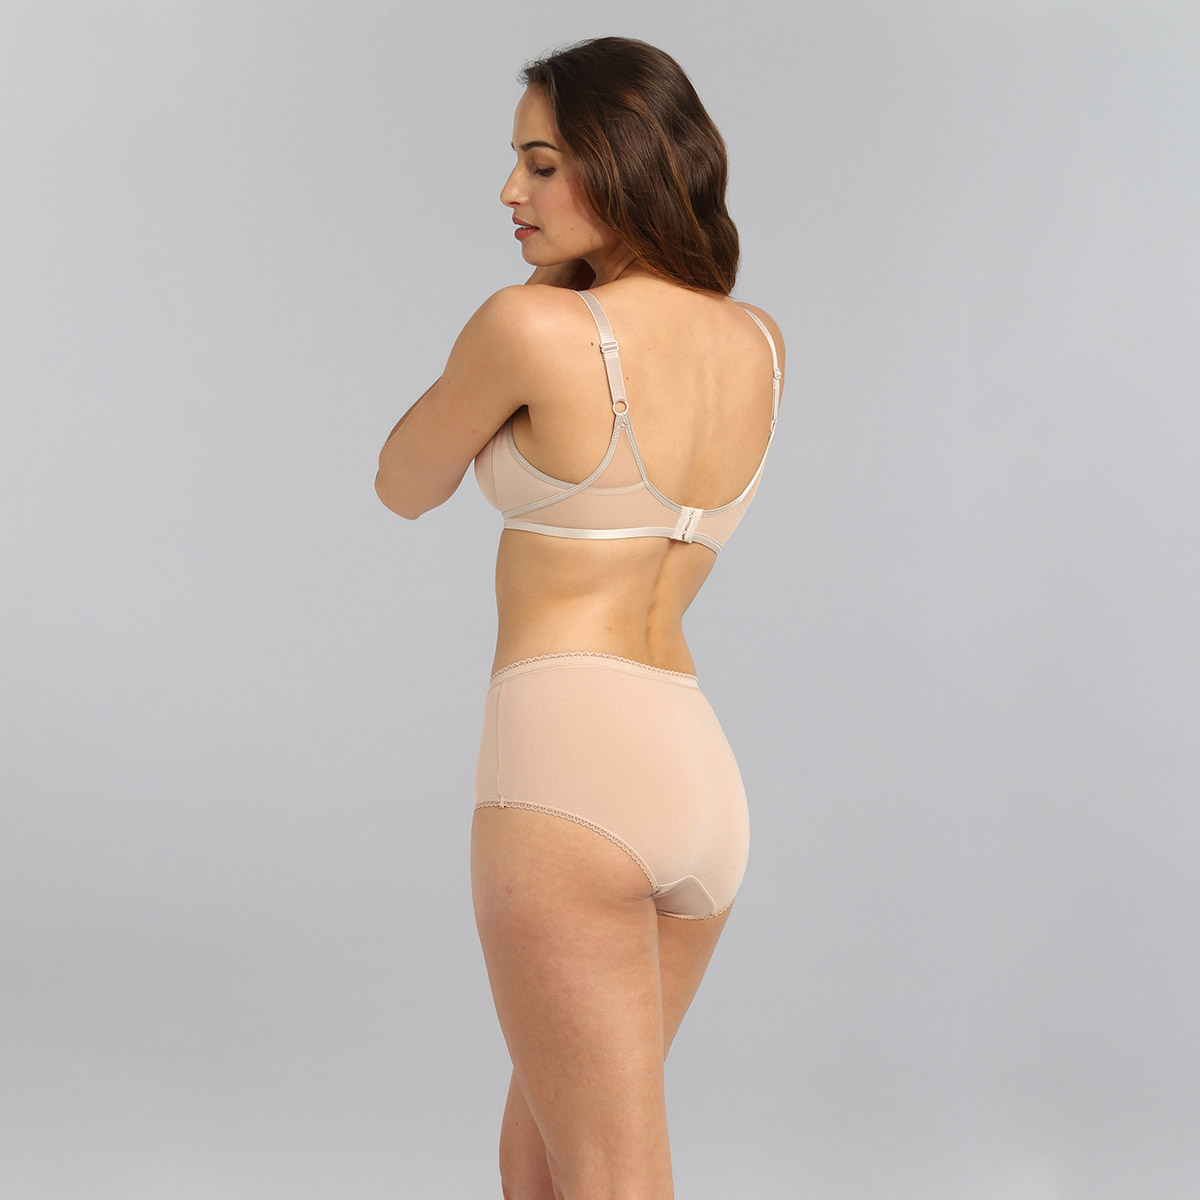 Non-wired bra in beige Ideal Beauty, , PLAYTEX